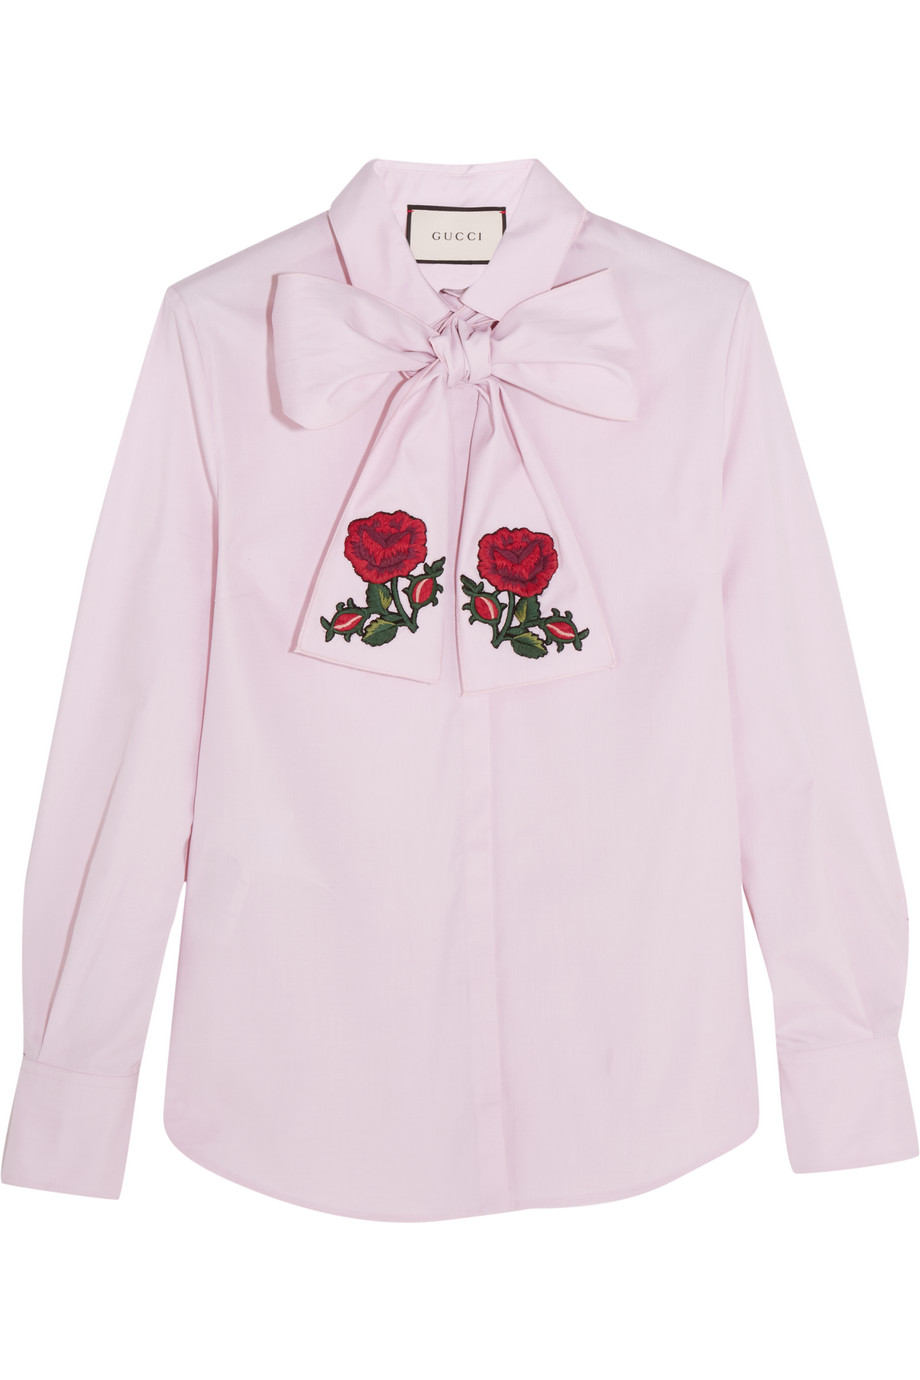 Gucci Embroidered Pussy-Bow Cotton Blouse, Pink, Women's, Size: 36